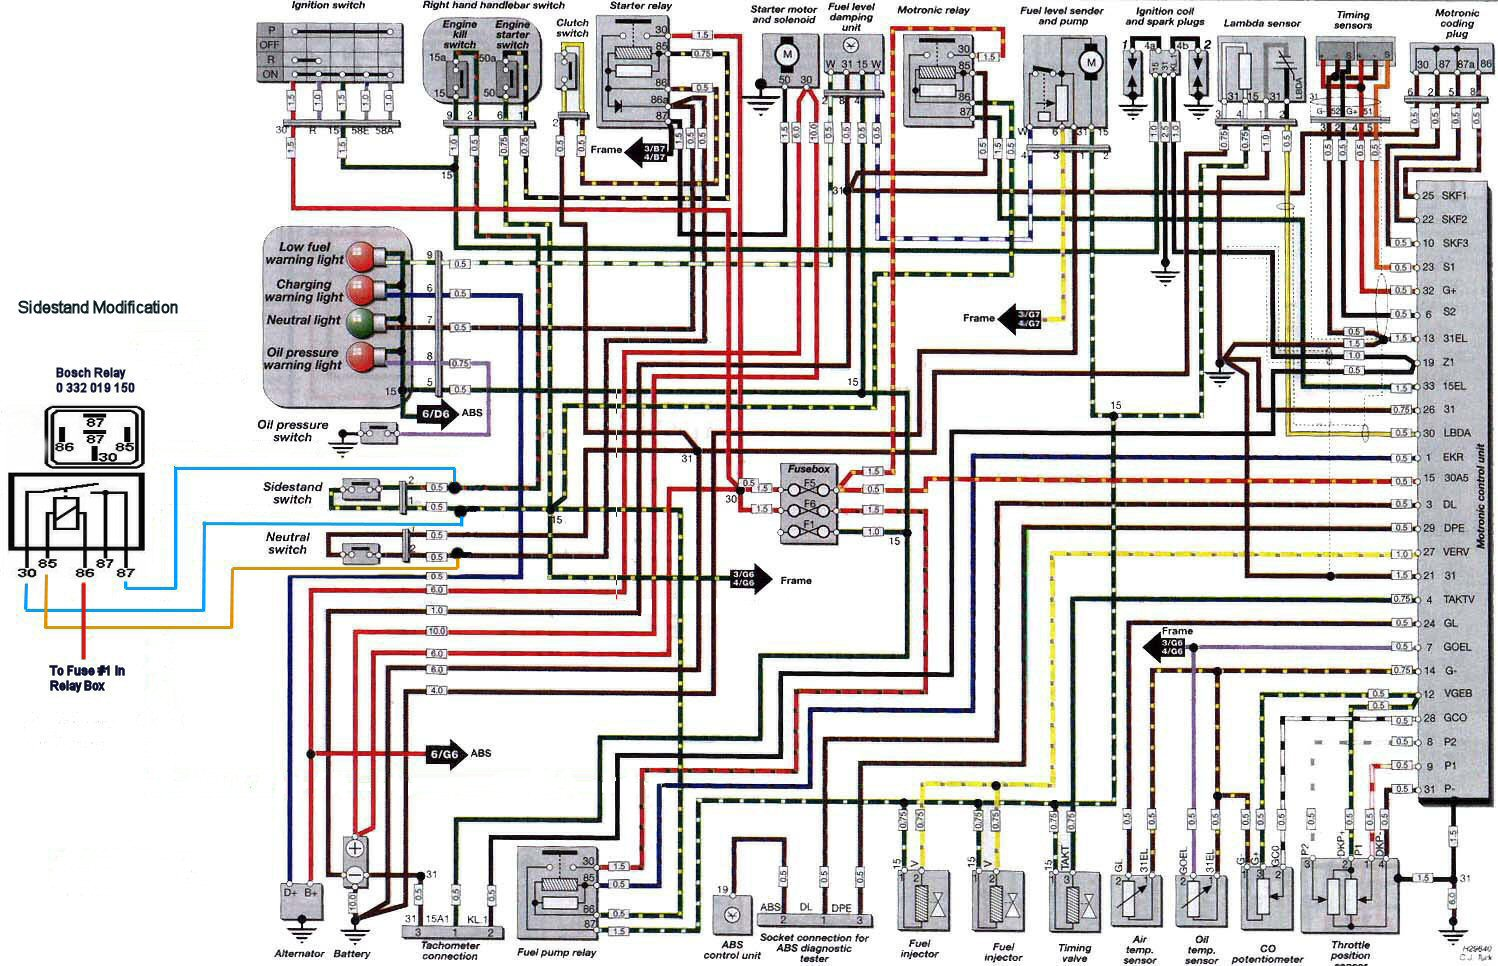 hight resolution of bmw r 1100 wiring diagram simple wiring schema bmw e39 speaker wiring diagram bmw r 1100